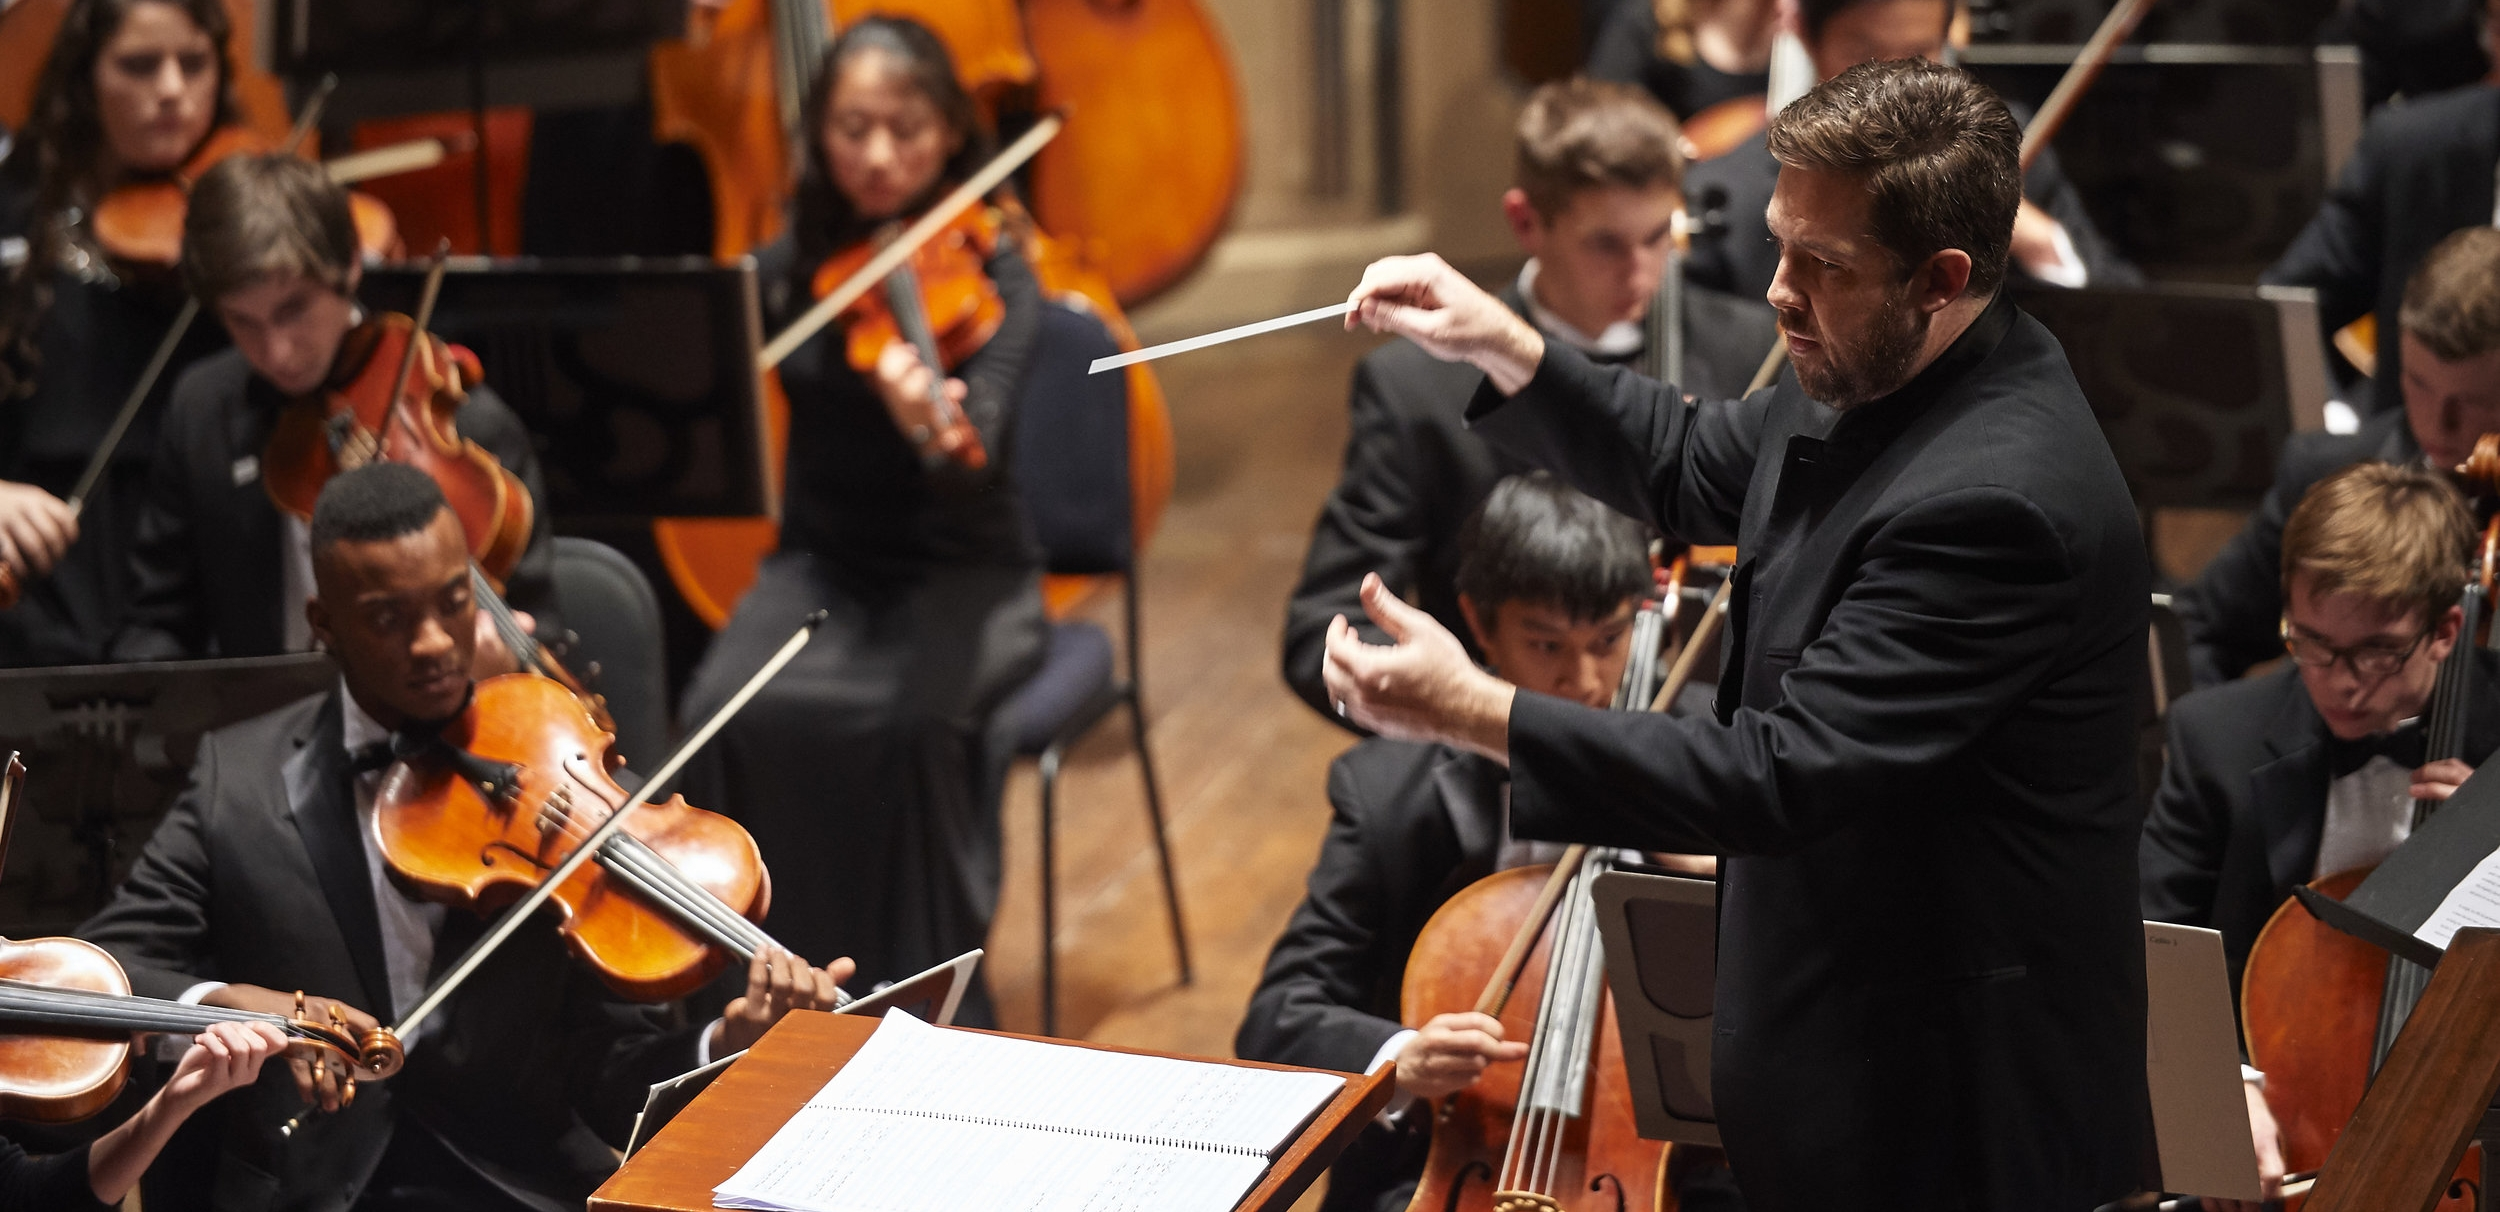 Music director Brett Mitchell leads the Cleveland Orchestra Youth Orchestra in performance at Severance Hall. (Photo by Roger Mastroianni)